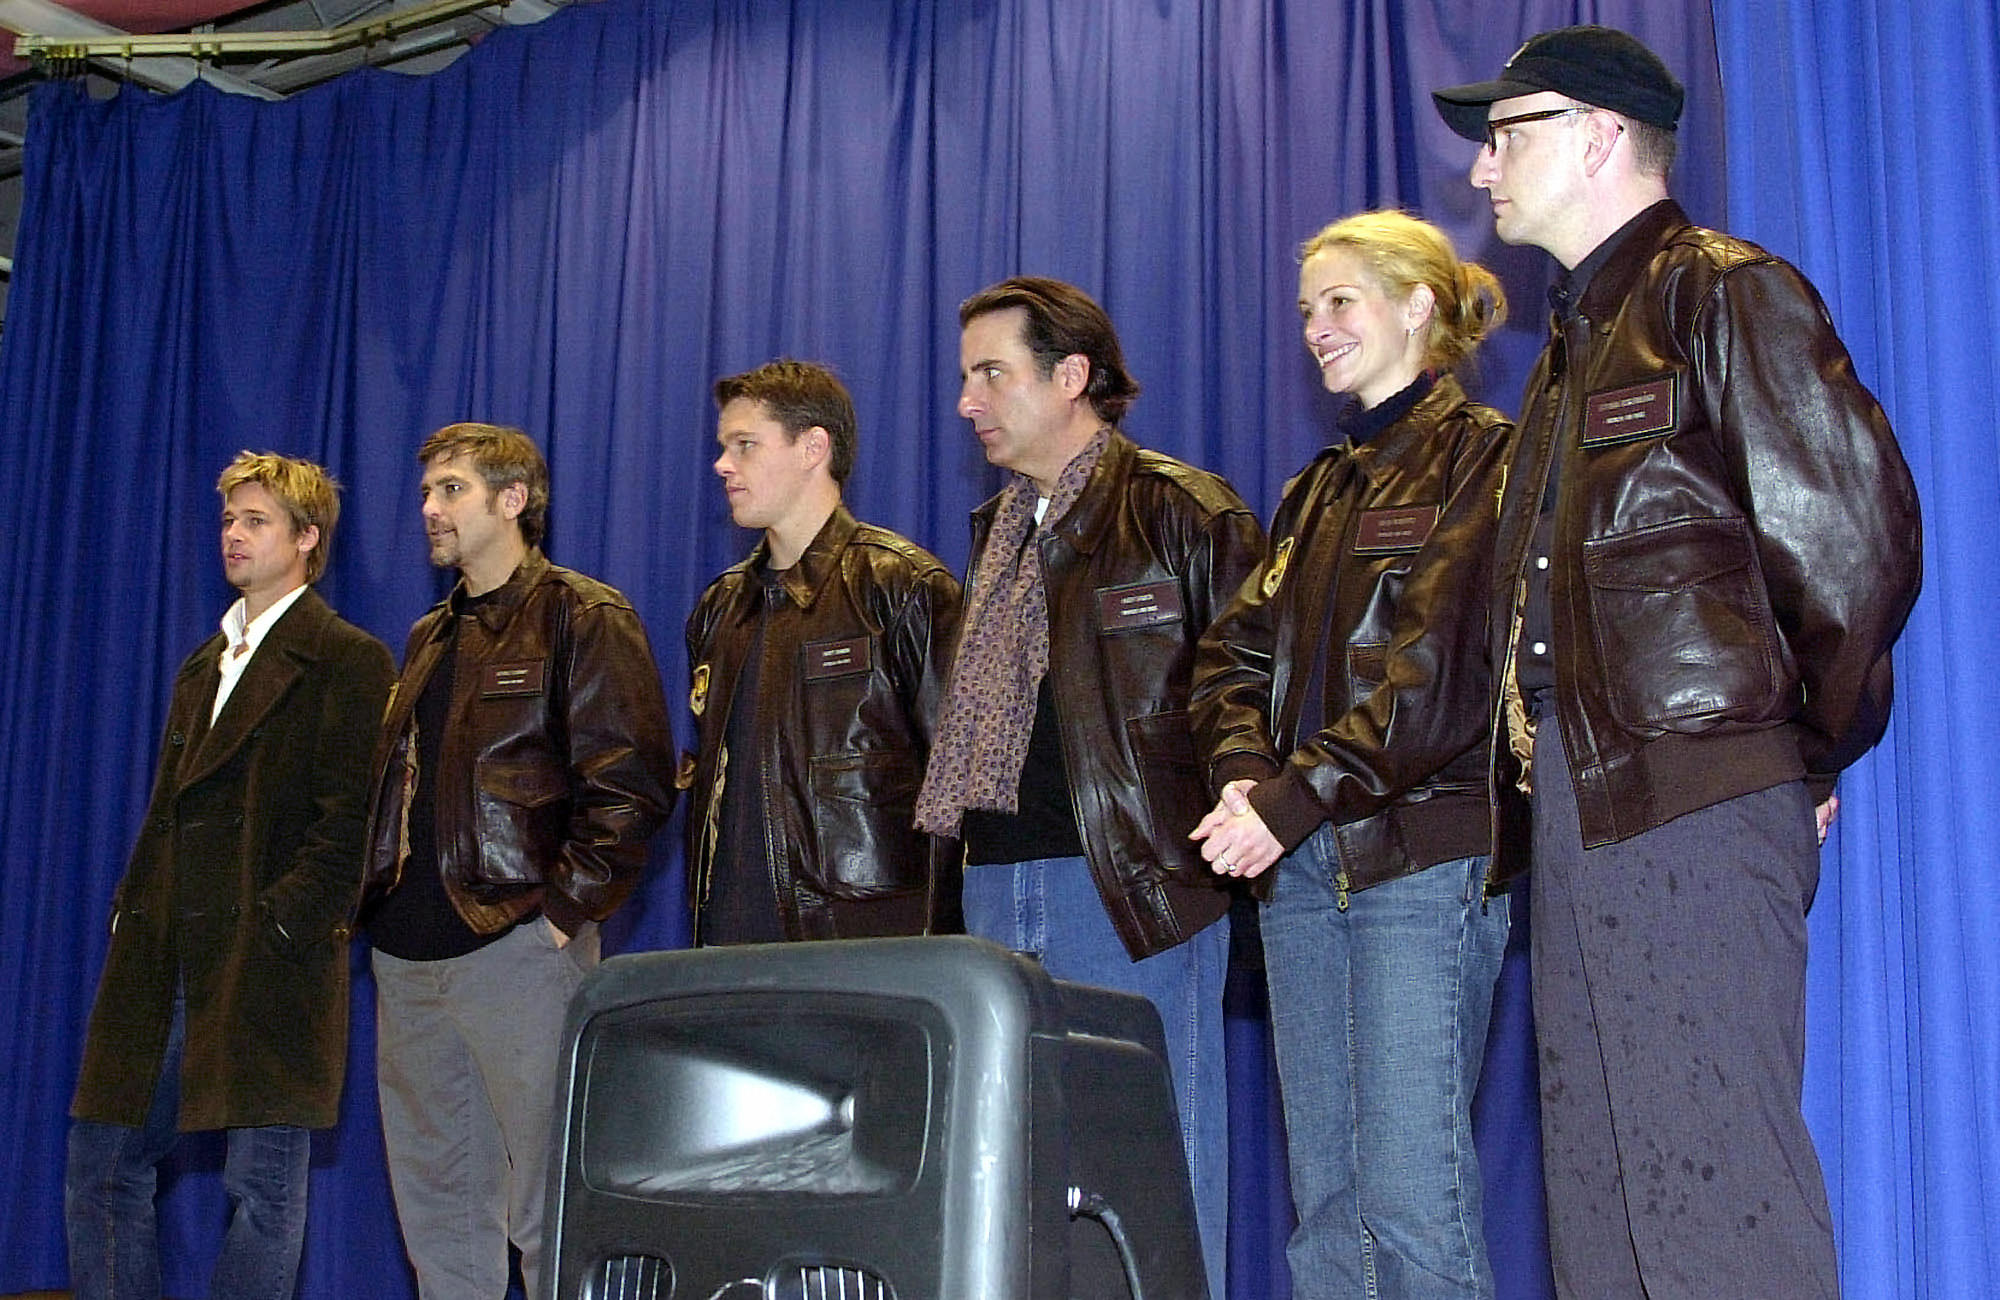 An image of five Caucasian men and one Caucasian woman posing in front of a blue curtain. Four of the men and the woman are wearing leather coats and jeans, while the man on the far left is wearing a trench coat and jeans.